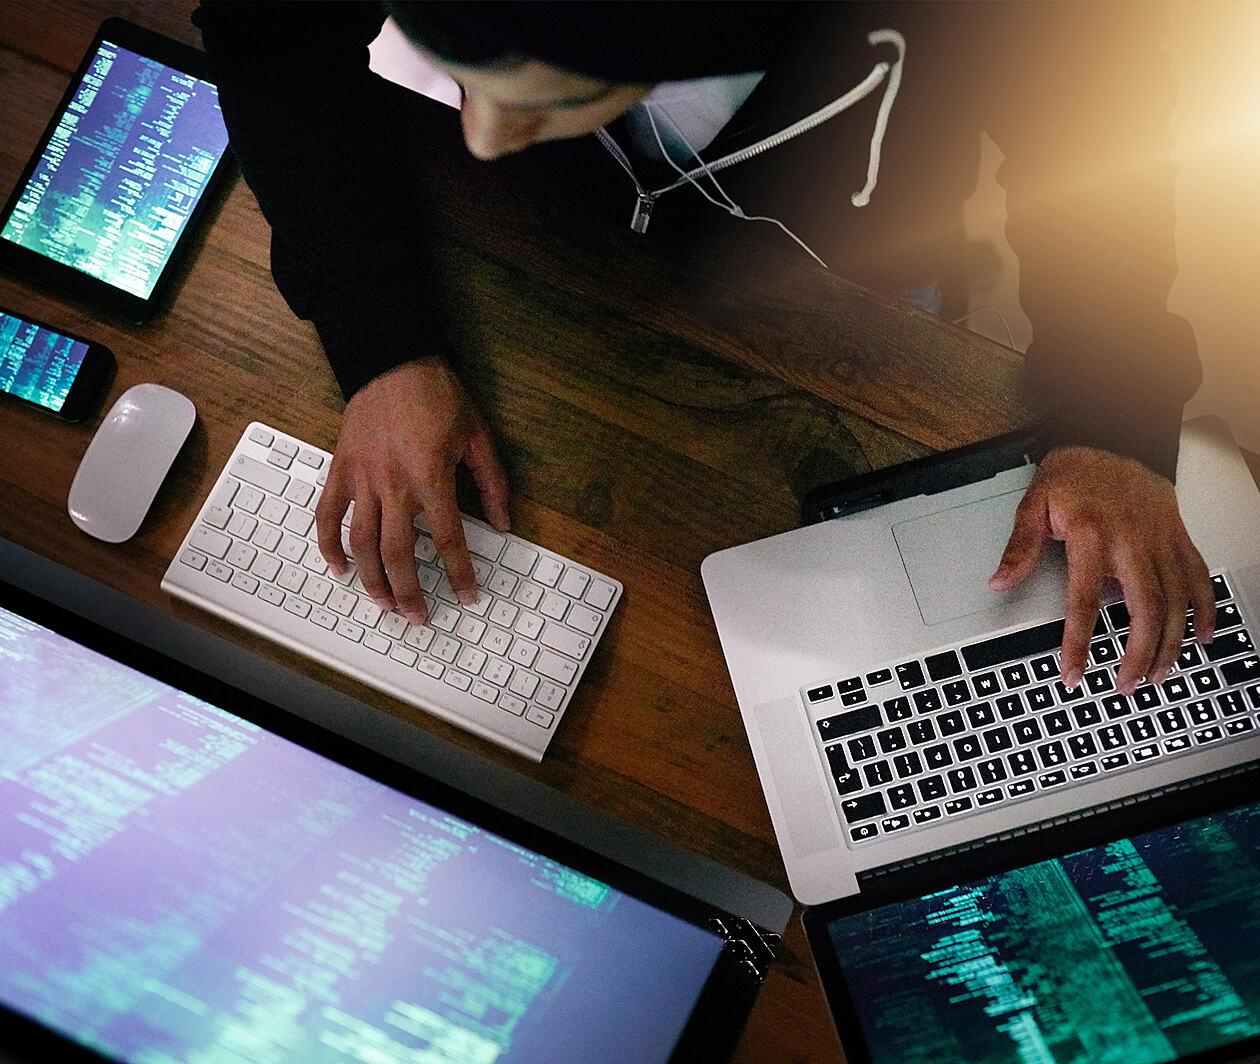 Cyber Security Foundations: Why Cyber Security is Important